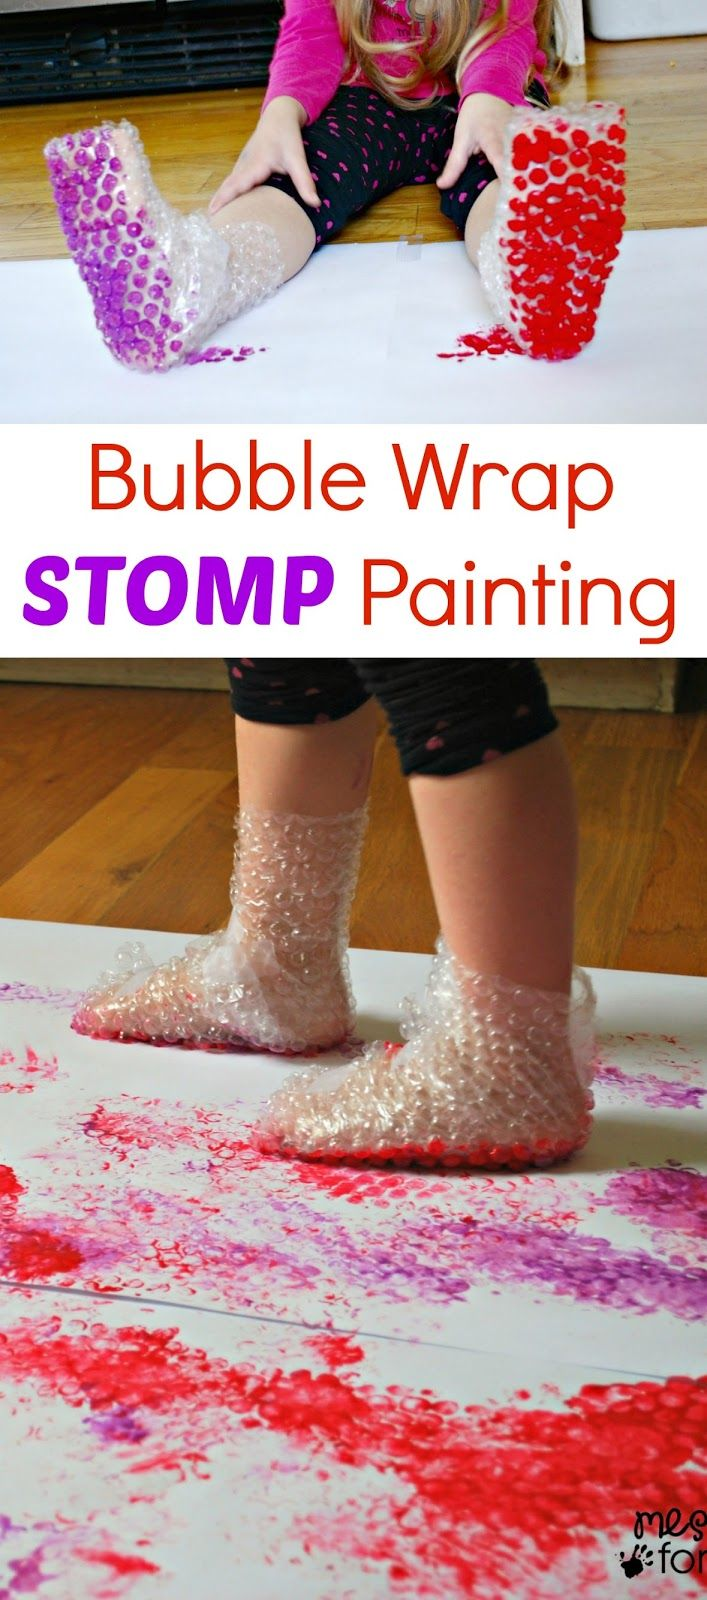 The coolest way to paint ever!!!  Bubble wrap stomp painting